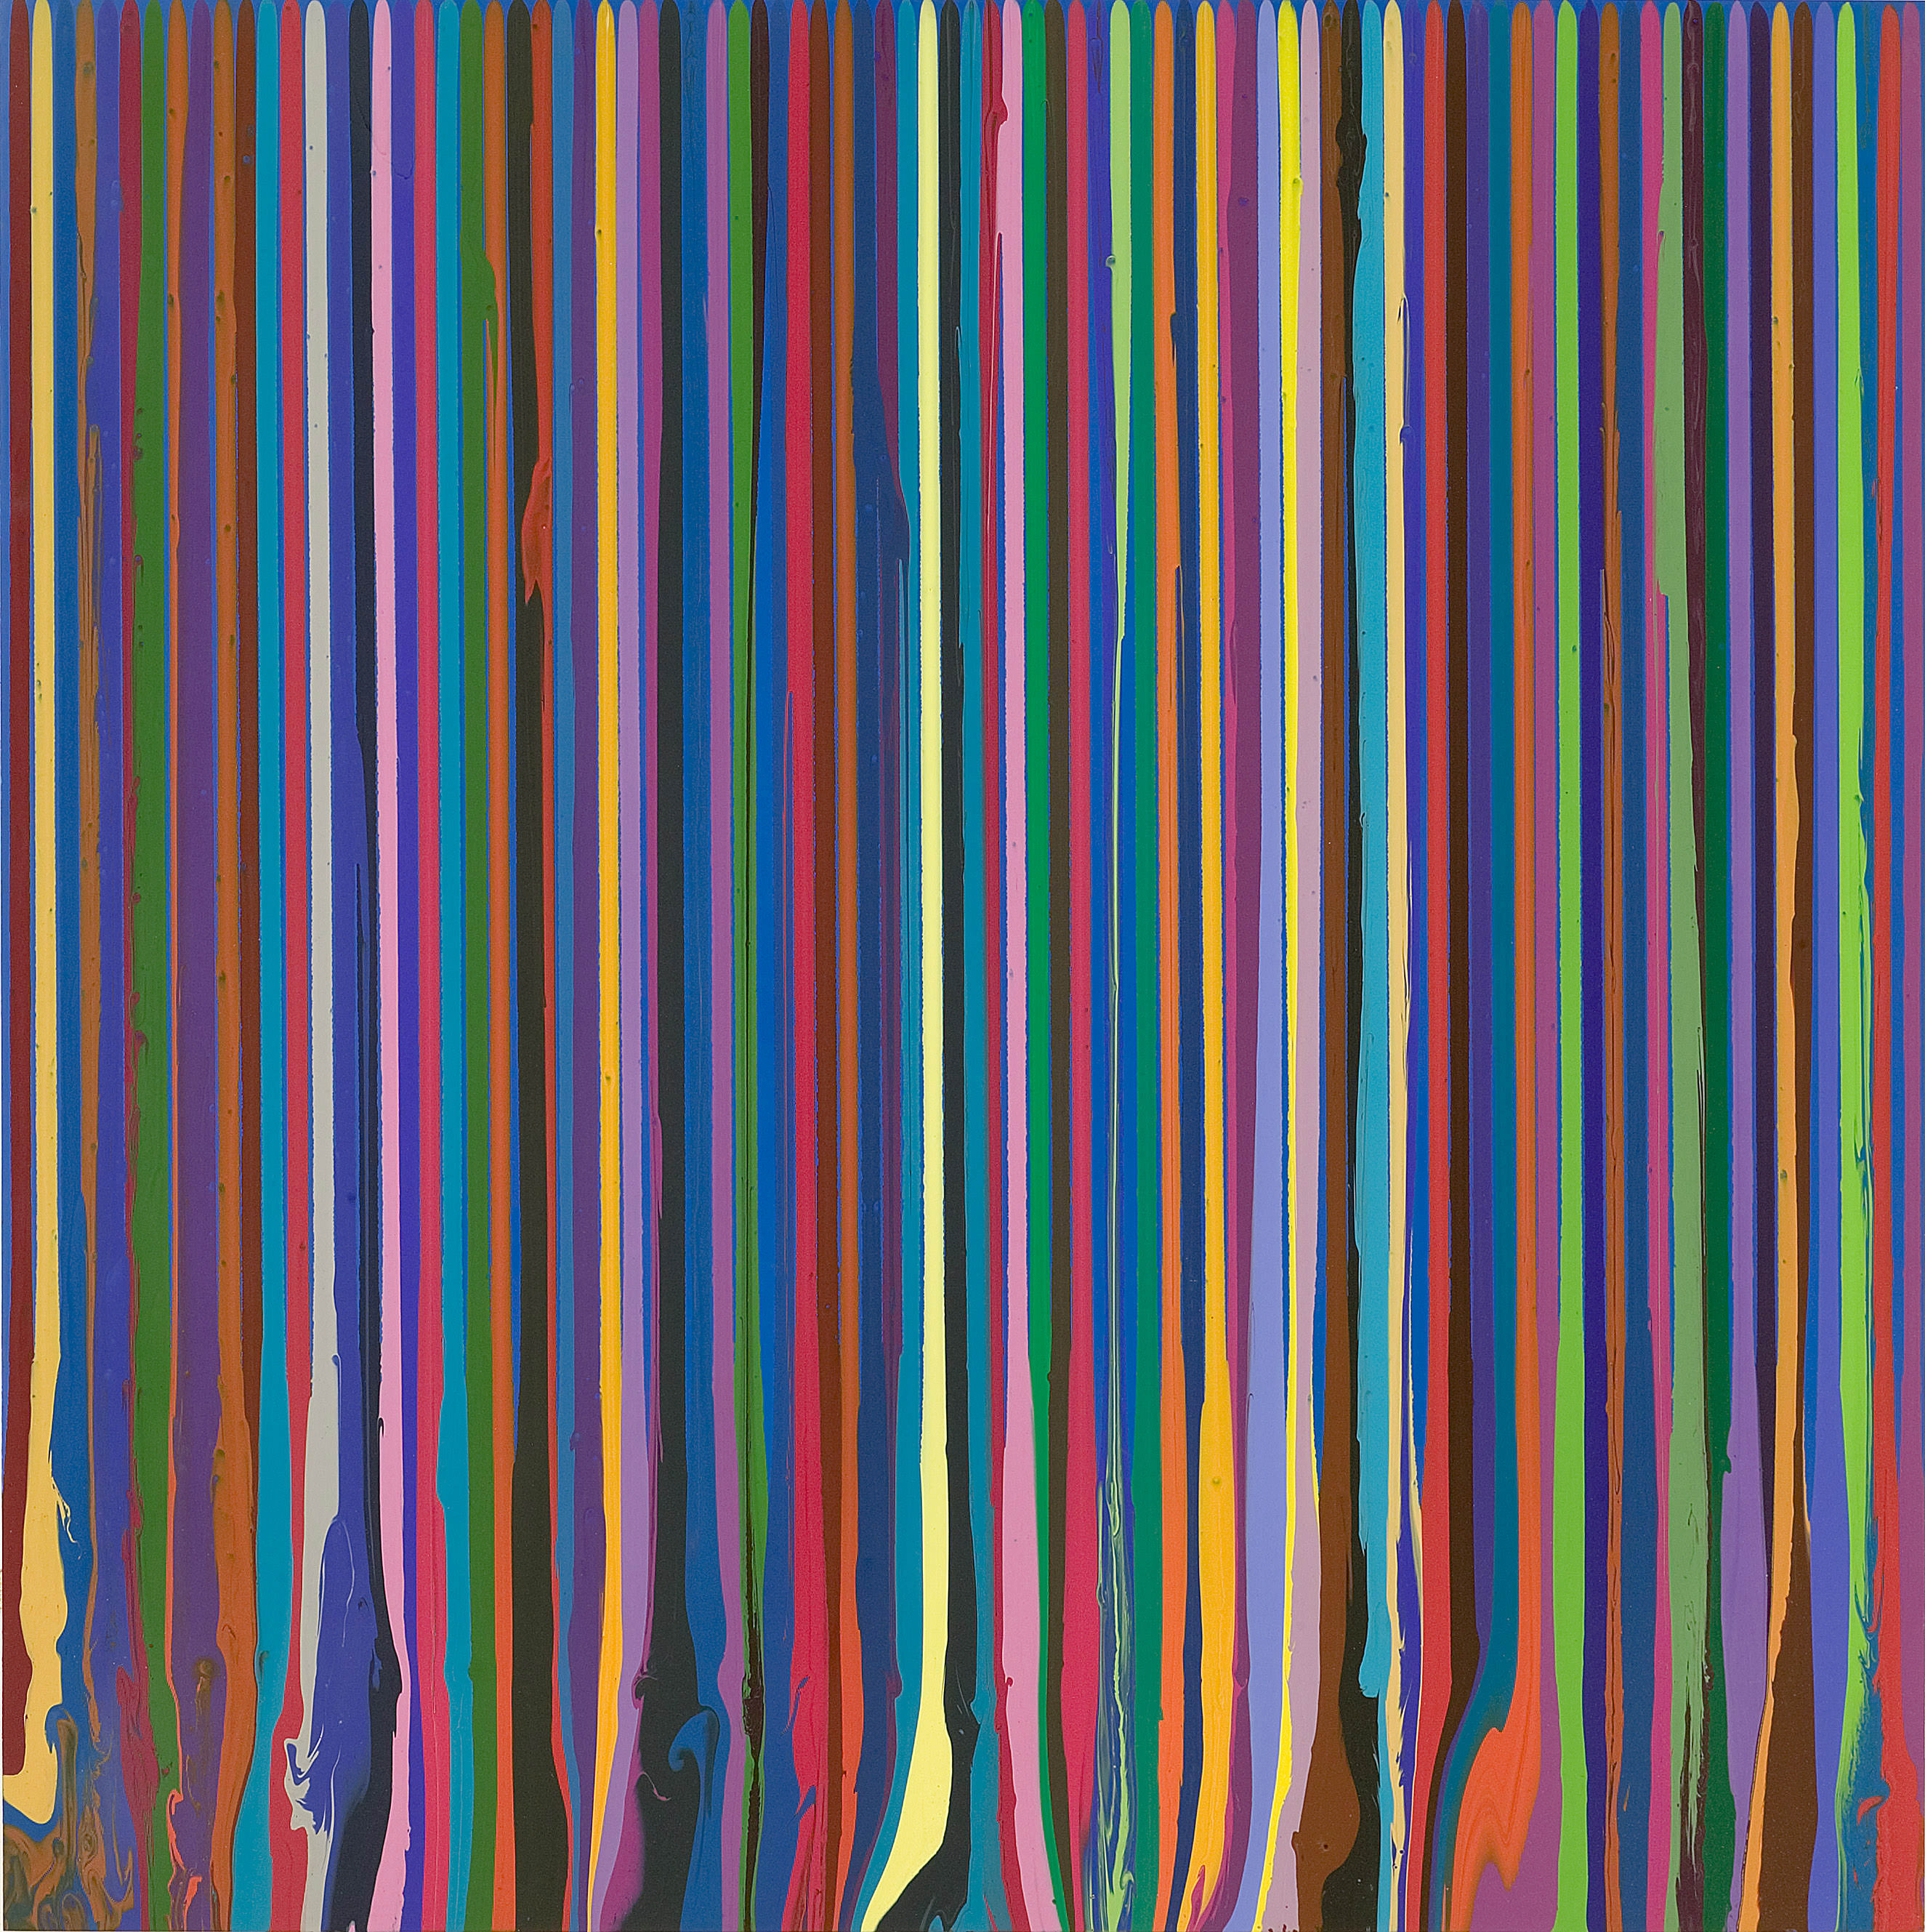 Puddle Painting: Swedish Blue (2009) d'IAN DAVENPORT. Peinture acrylique sur aluminium. Courtesy Waddington Custot Galleries et galerie Xippas.